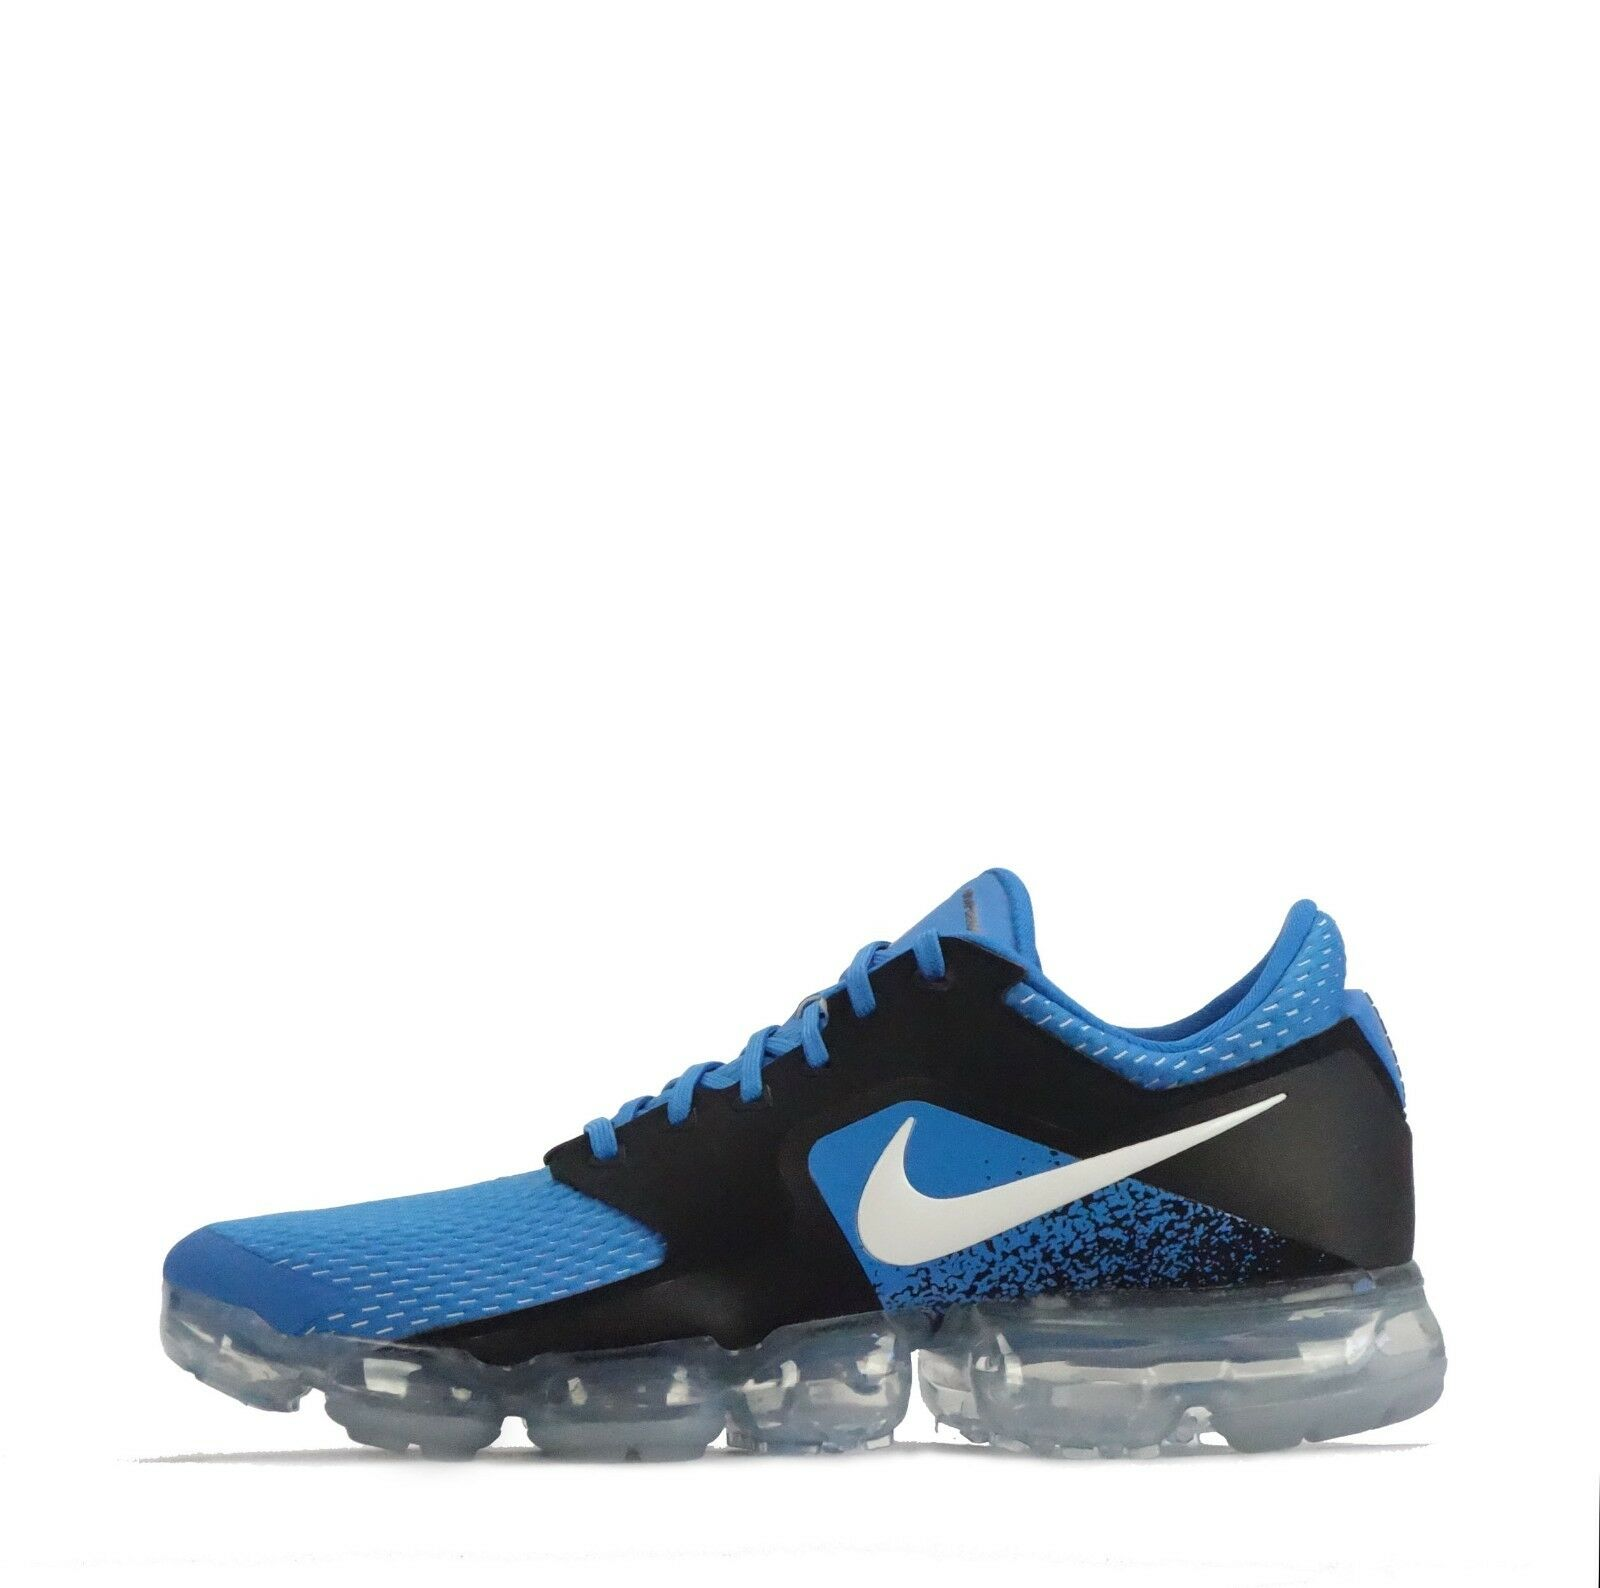 Nike Air Vapormax Mens Trainers in Photo Blue/White